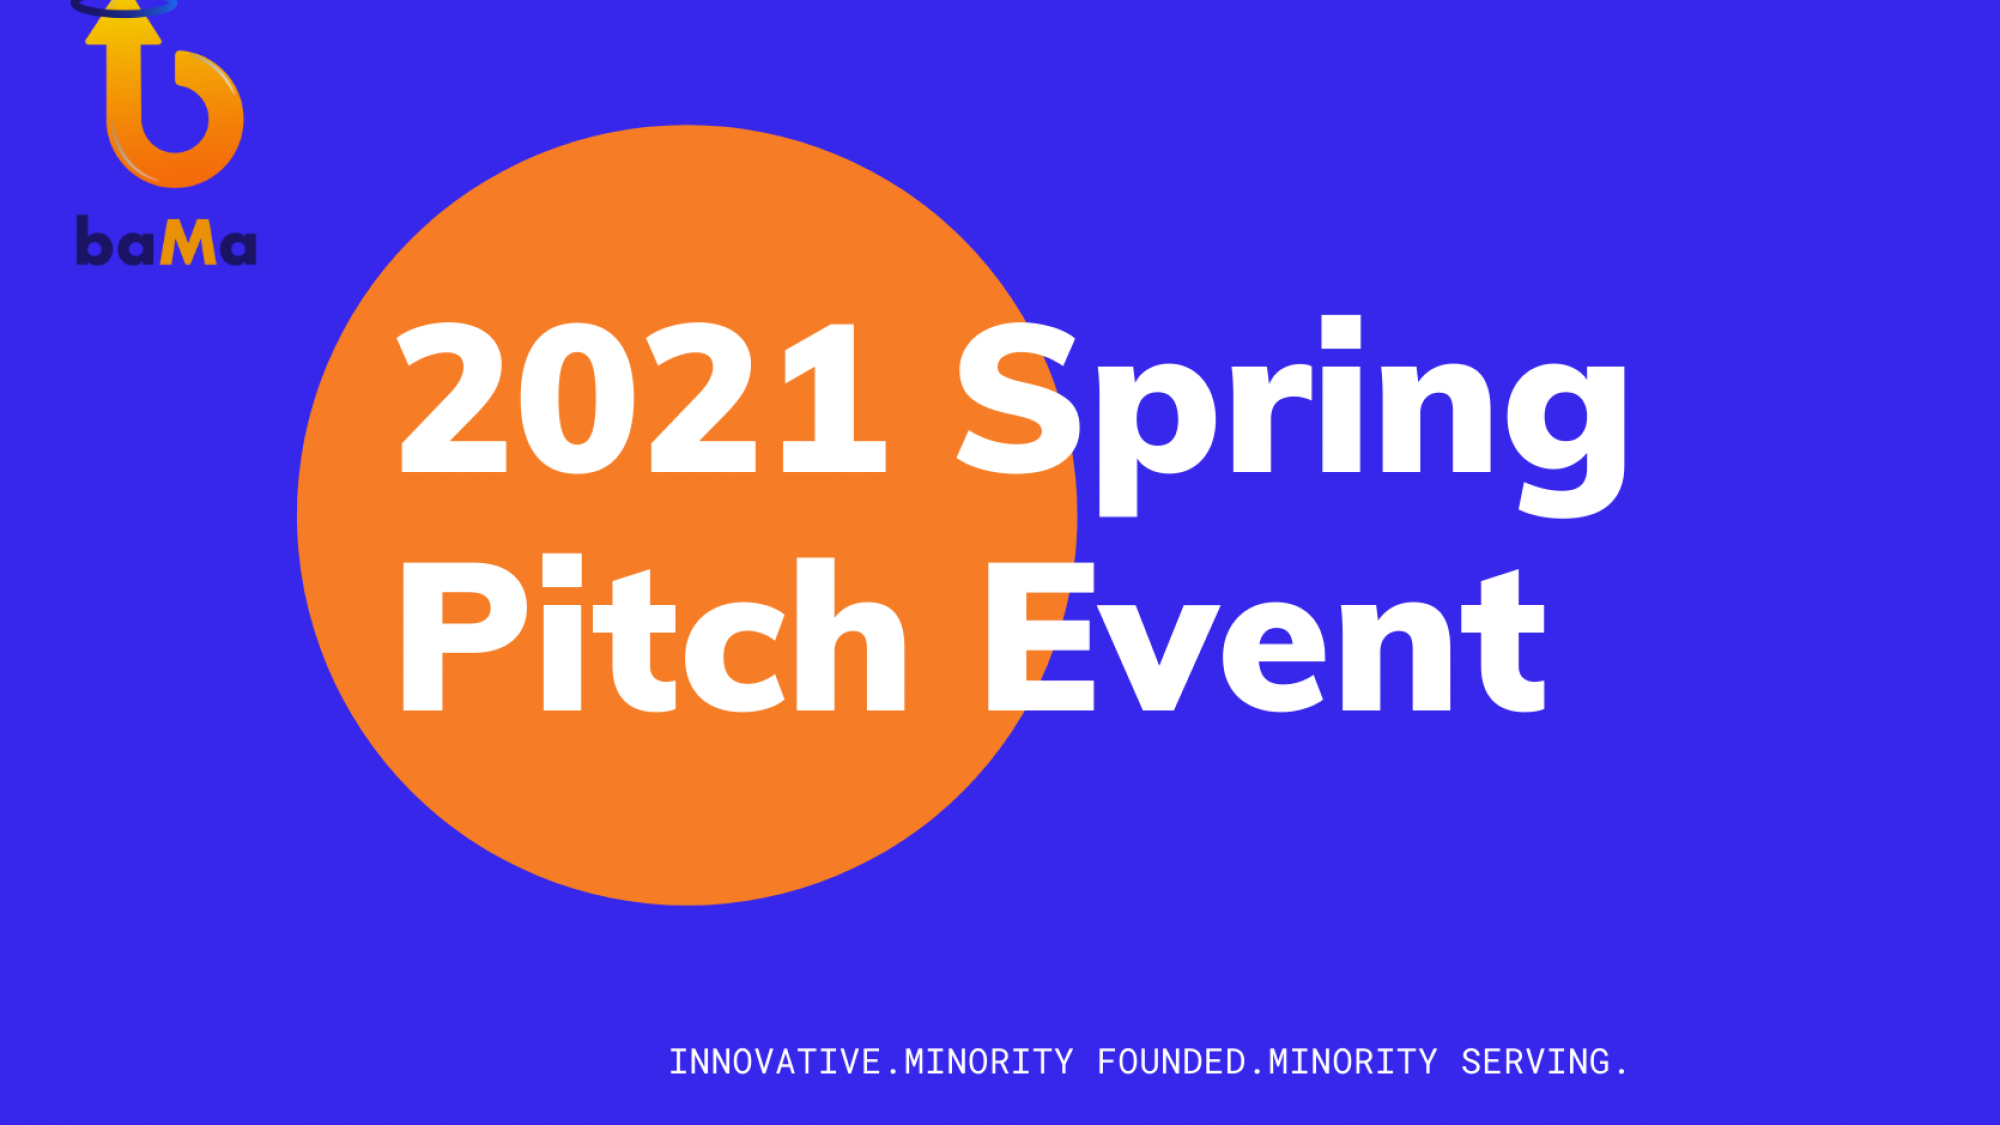 Spring 2021 Pitch Event (2)